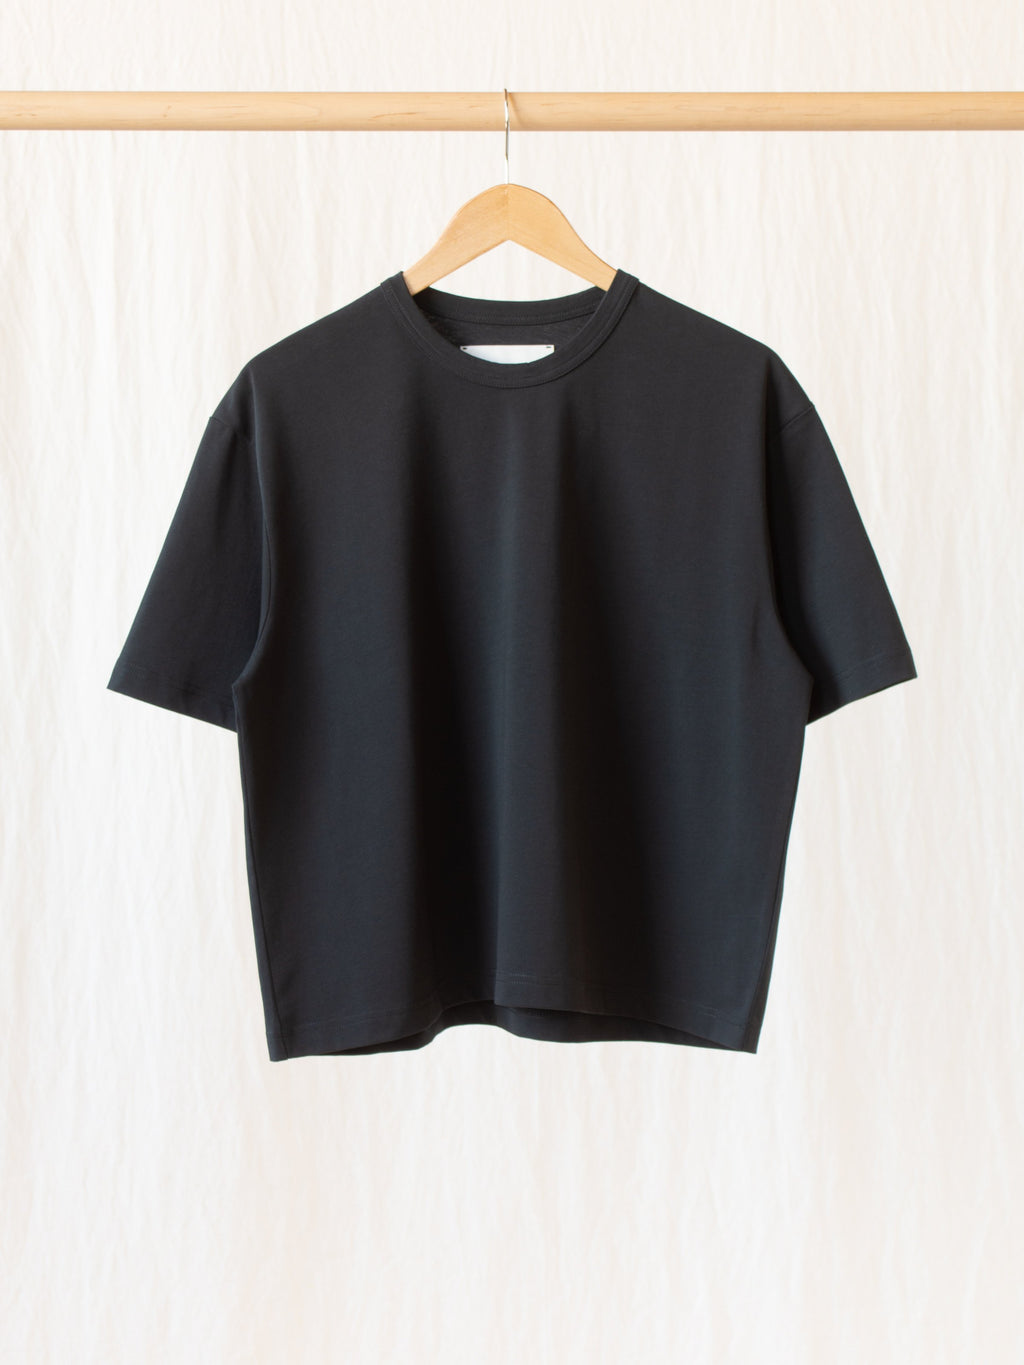 Namu Shop - Studio Nicholson Lee Mercerized Cotton Tee - Black